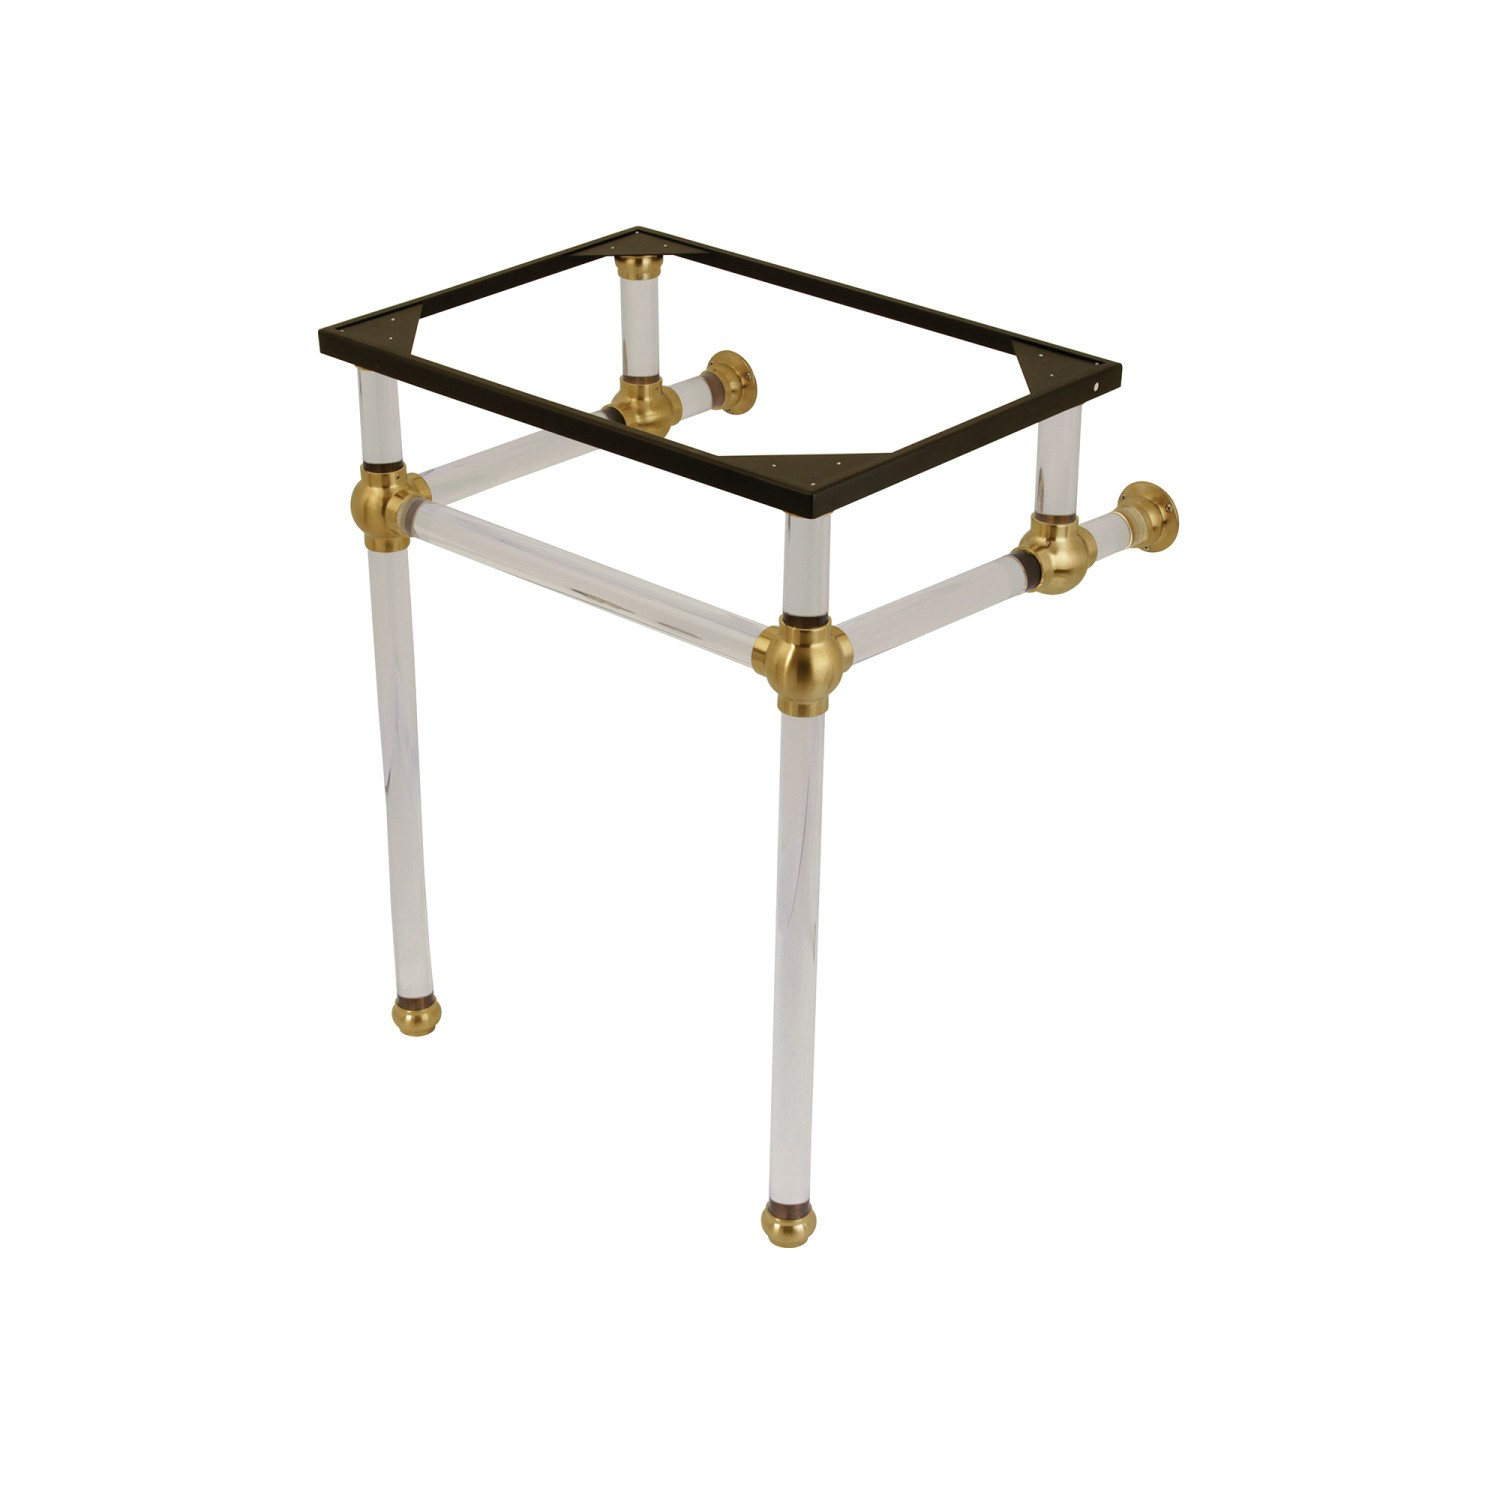 Kingston Brass Vah242030sb Fauceture Templeton Console Basin Holder With Acrylic Pedestal Brushed Brass